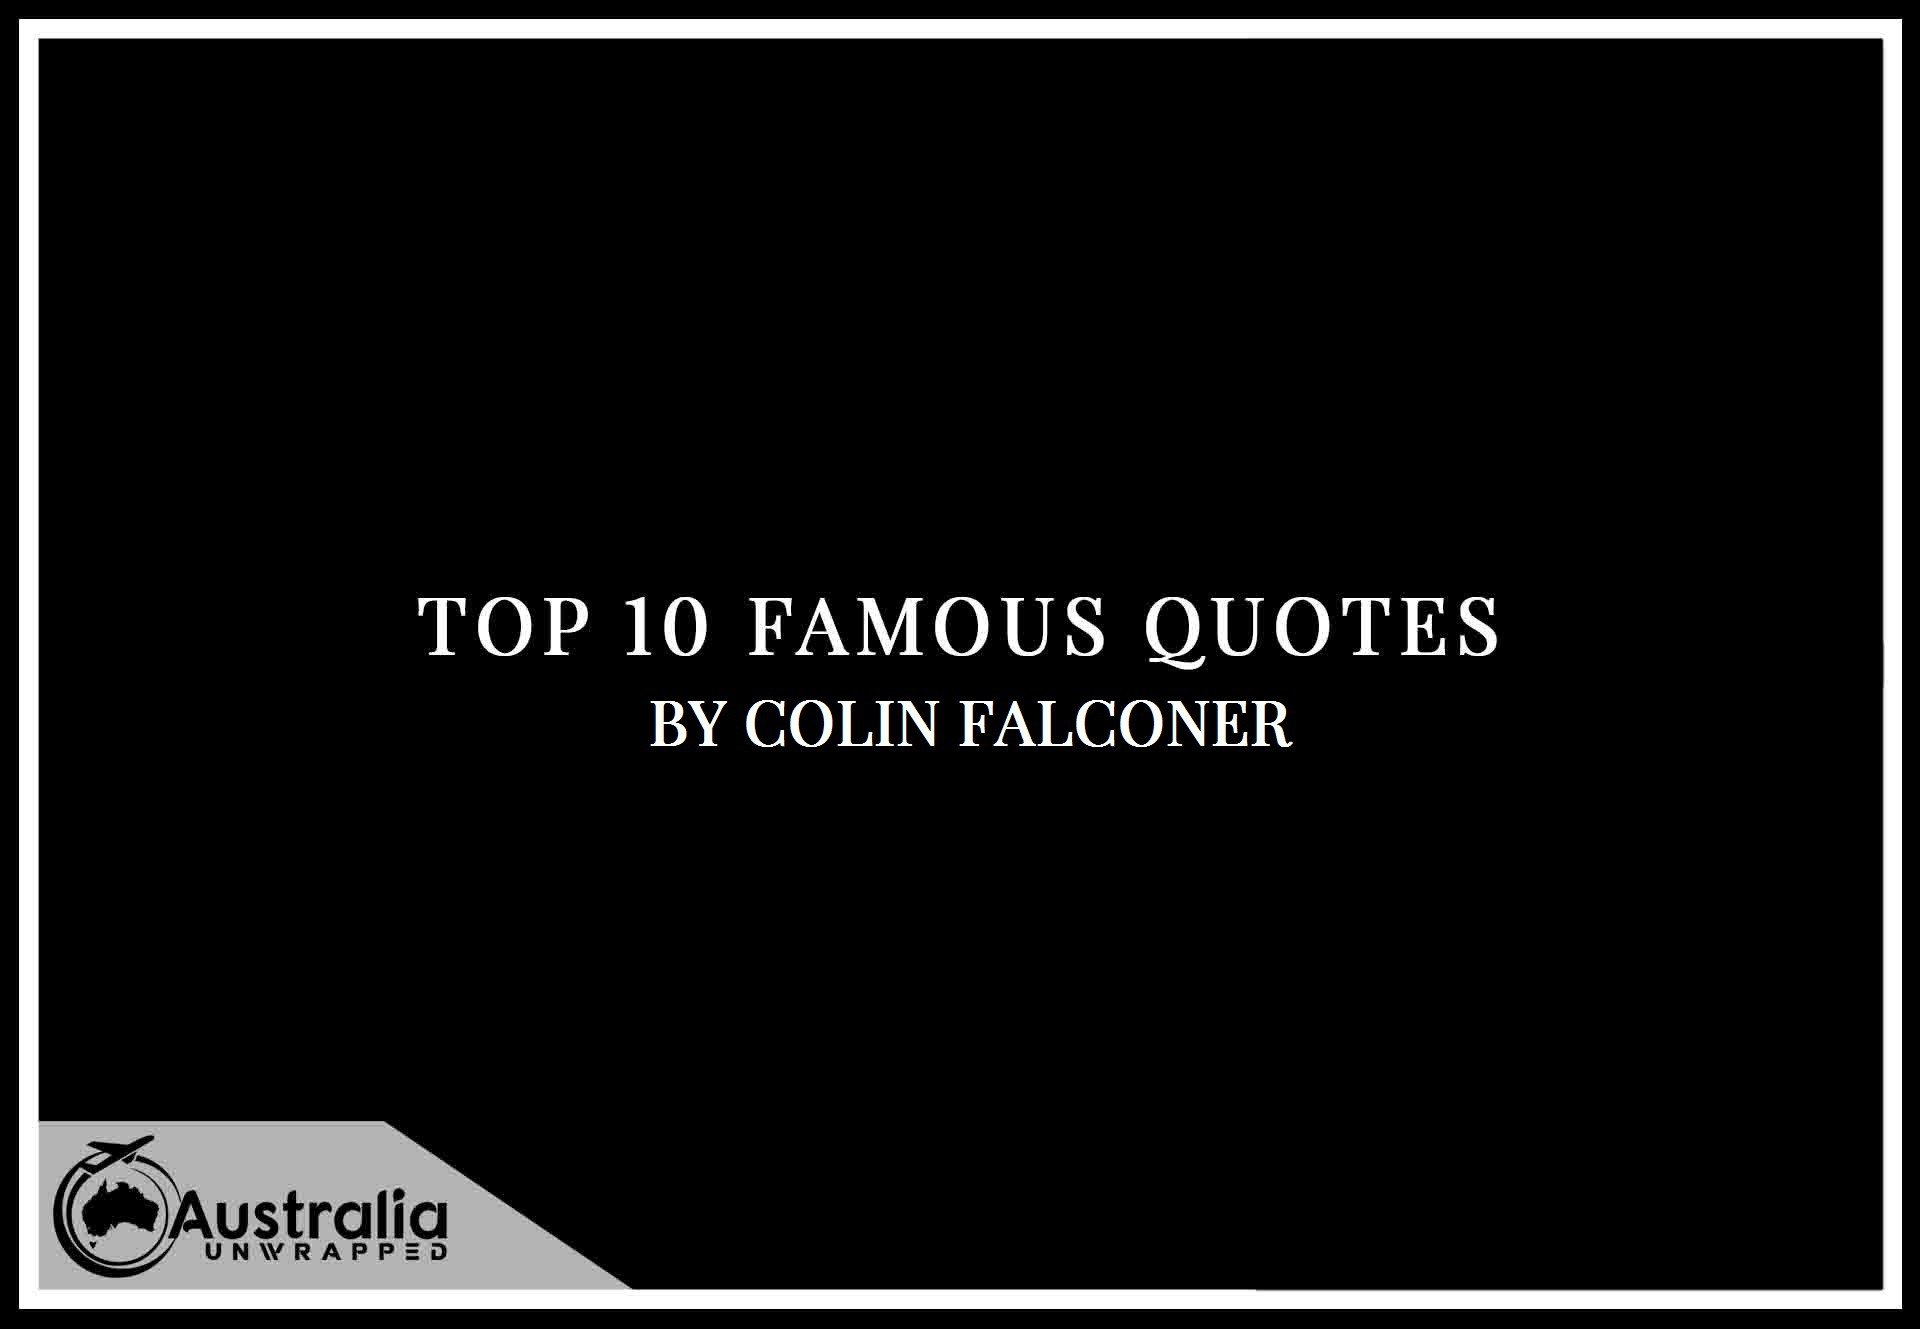 Colin Falconer's Top 10 Popular and Famous Quotes